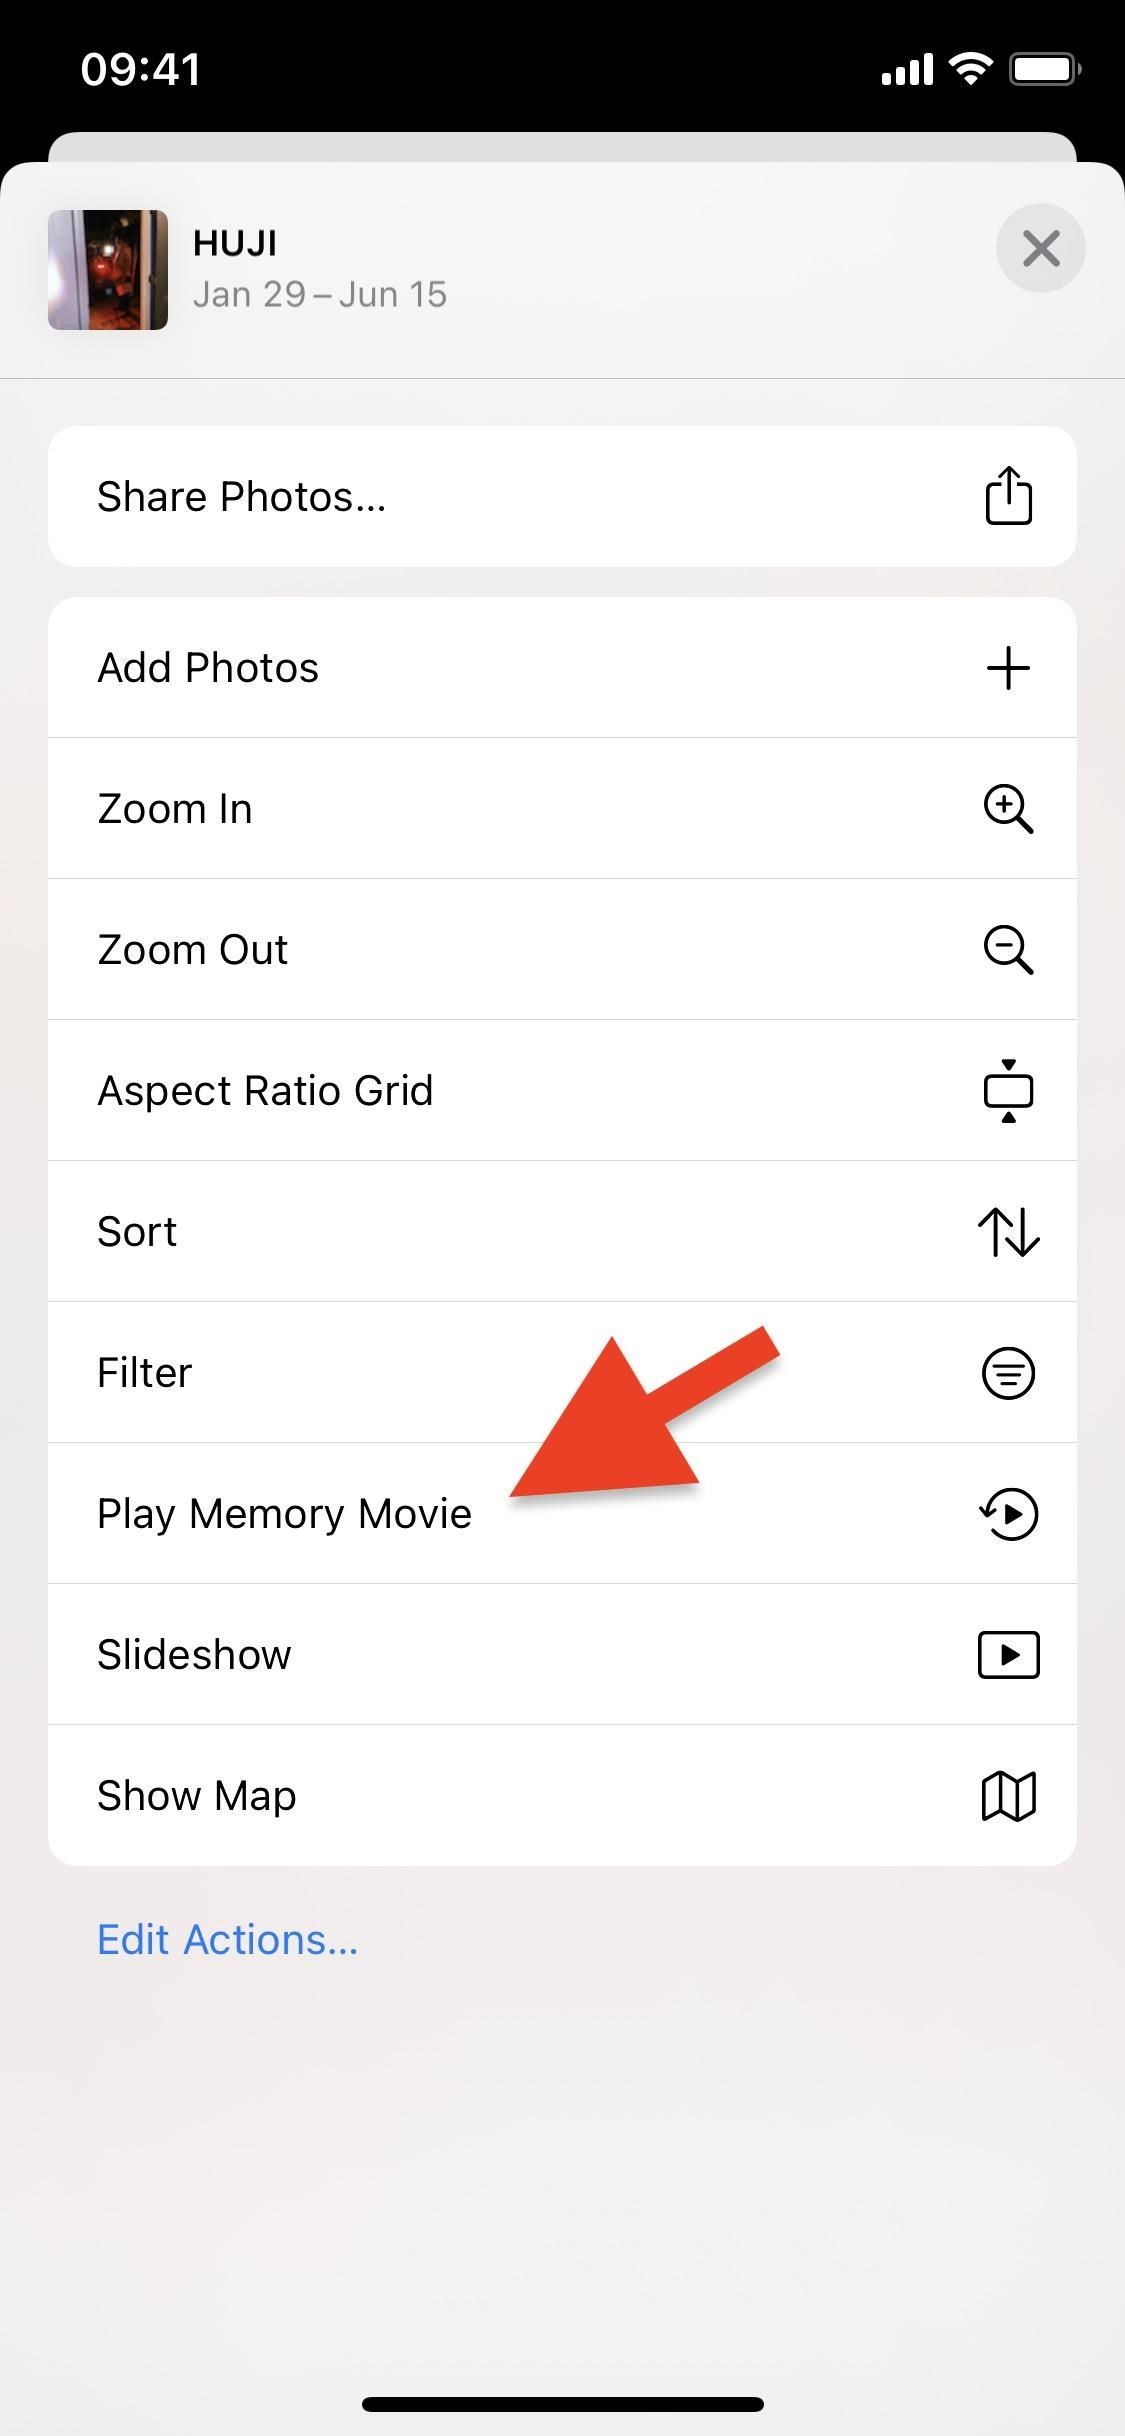 How to Play Memory Movies for Any Album on Your iPhone in iOS 14